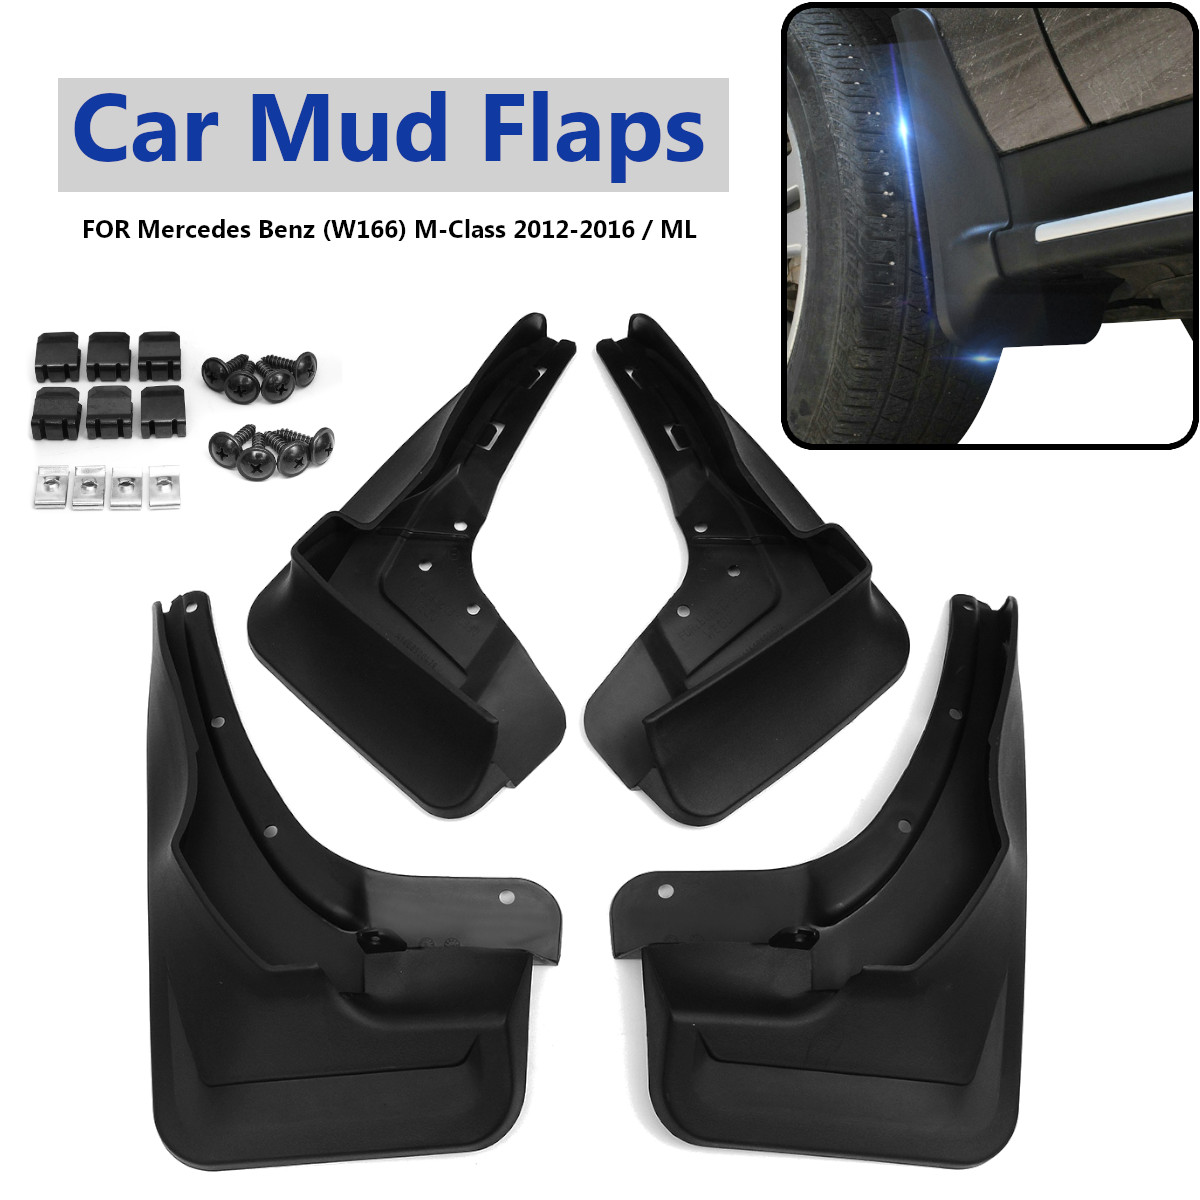 Front Rear Fender Mud Flaps For Mercedes For Benz (W166) M-Class 2012-2016 Splash Guards Mudguards Car Accessories